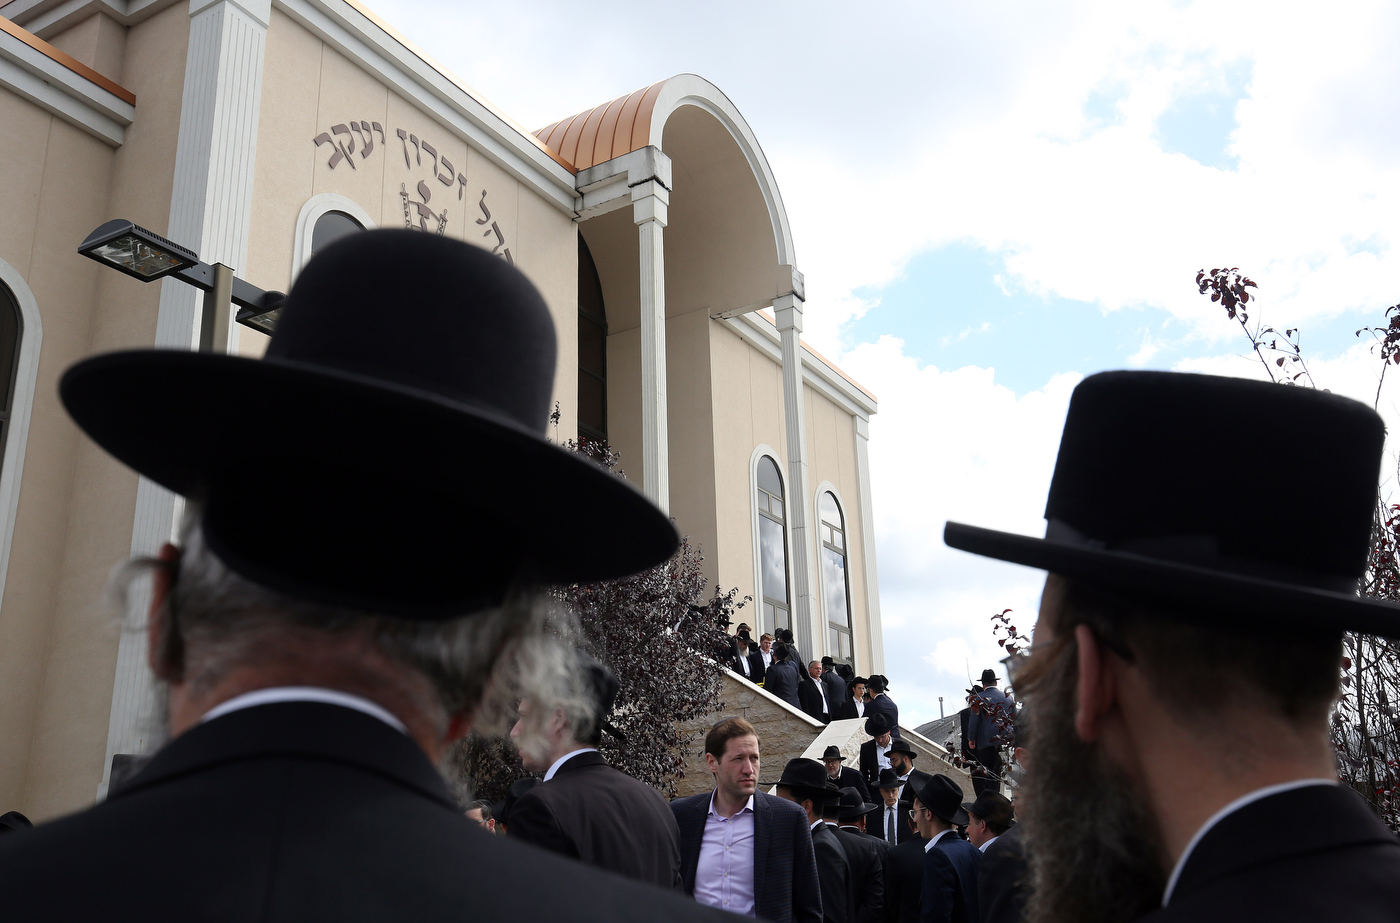 Orthodox group asks judge to suspend town's anti-school dorm and 'eruv' laws